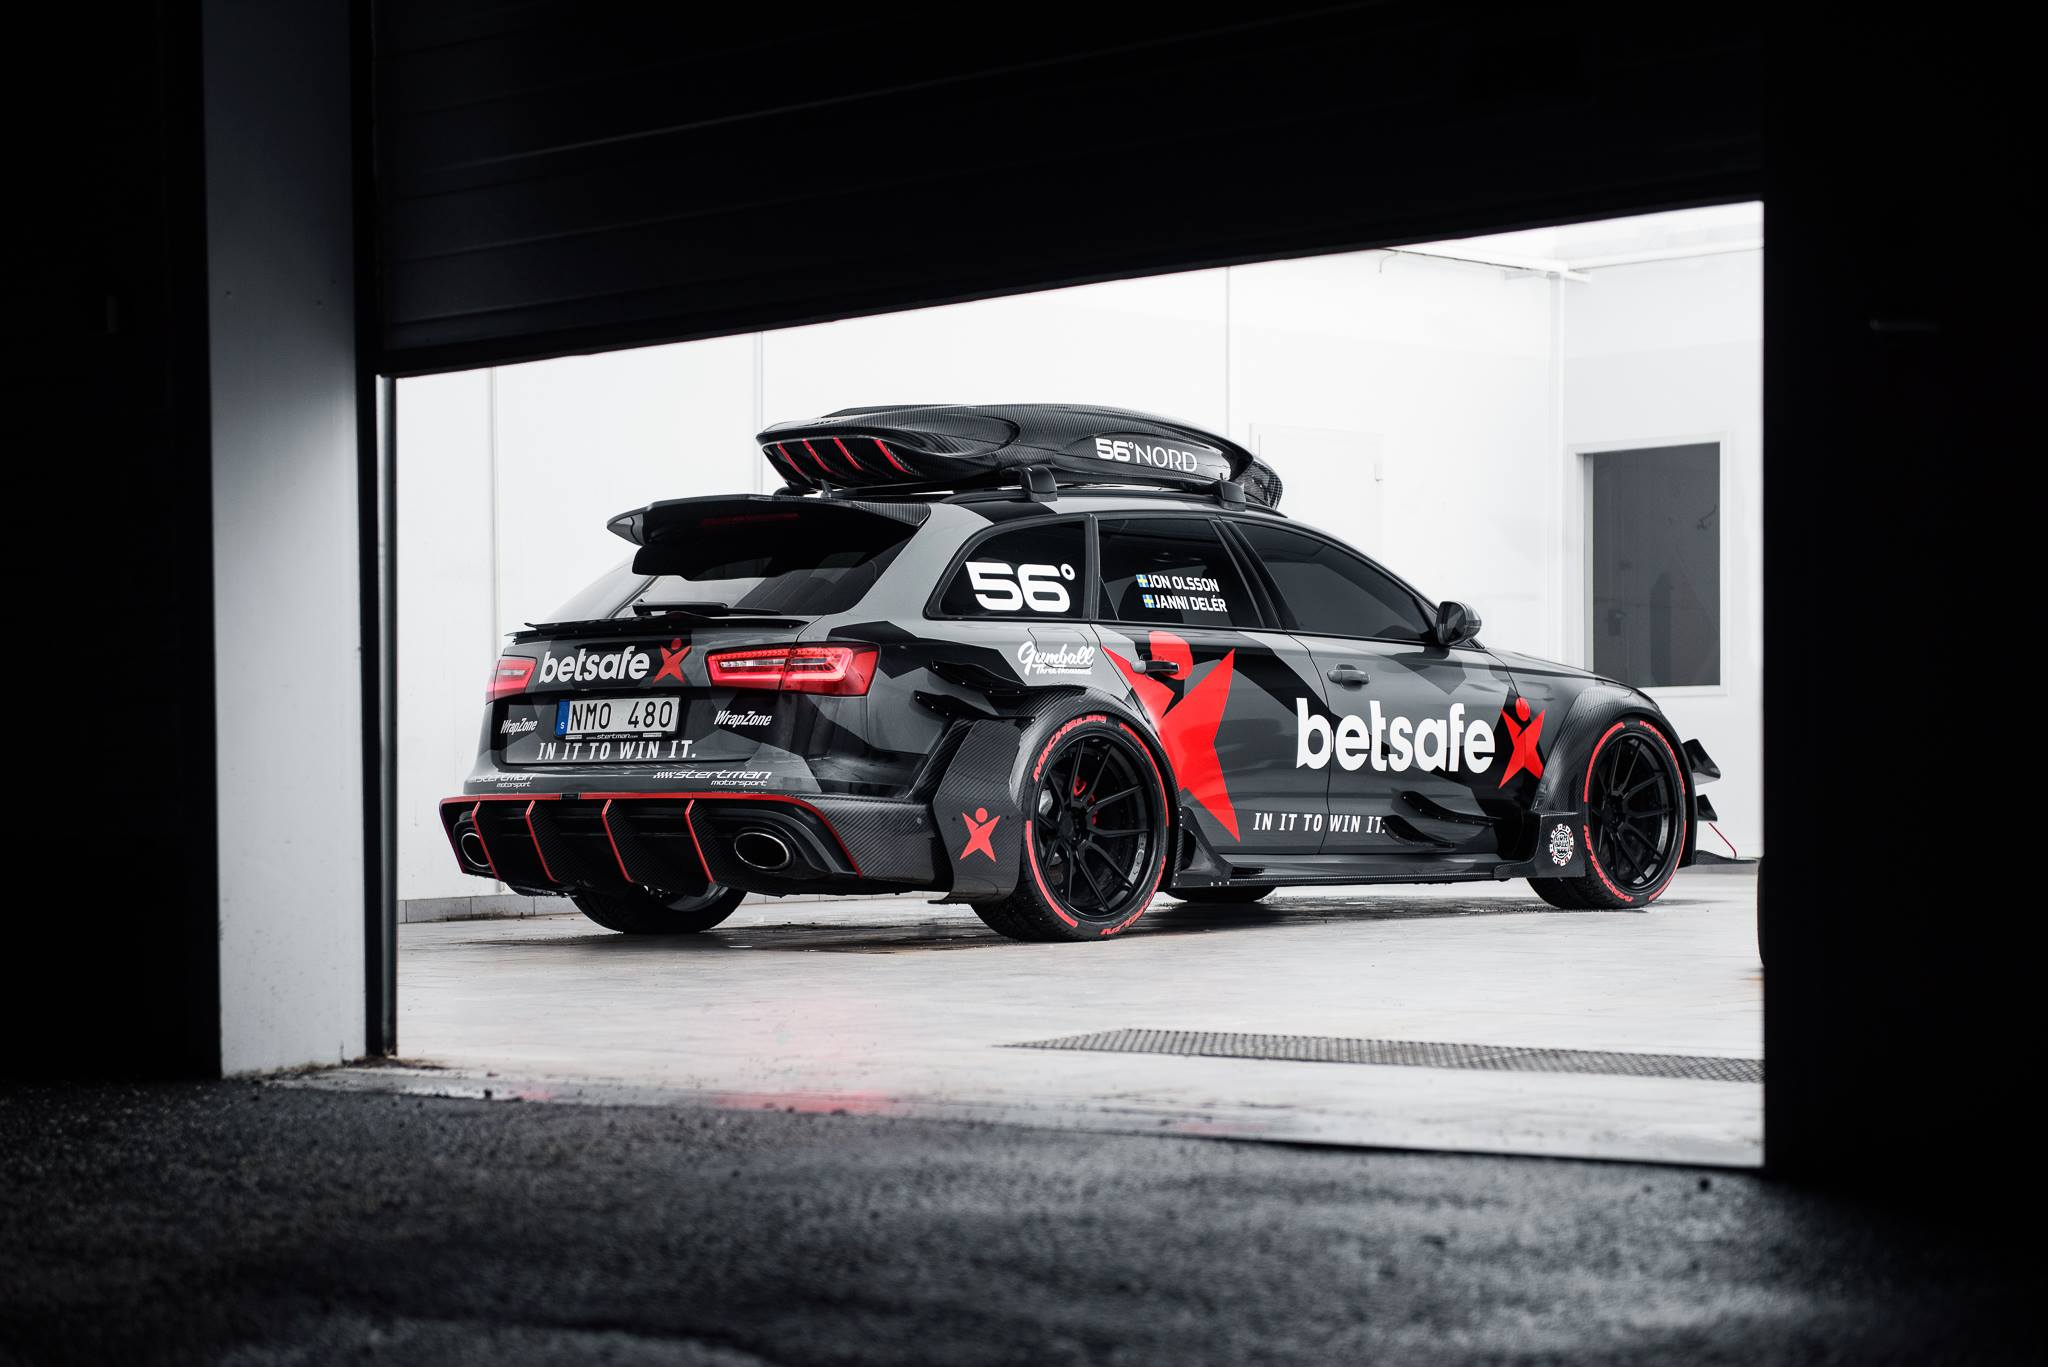 950 Horsepower Audi Rs6 Dtm By Jon Olsson Rear Photo